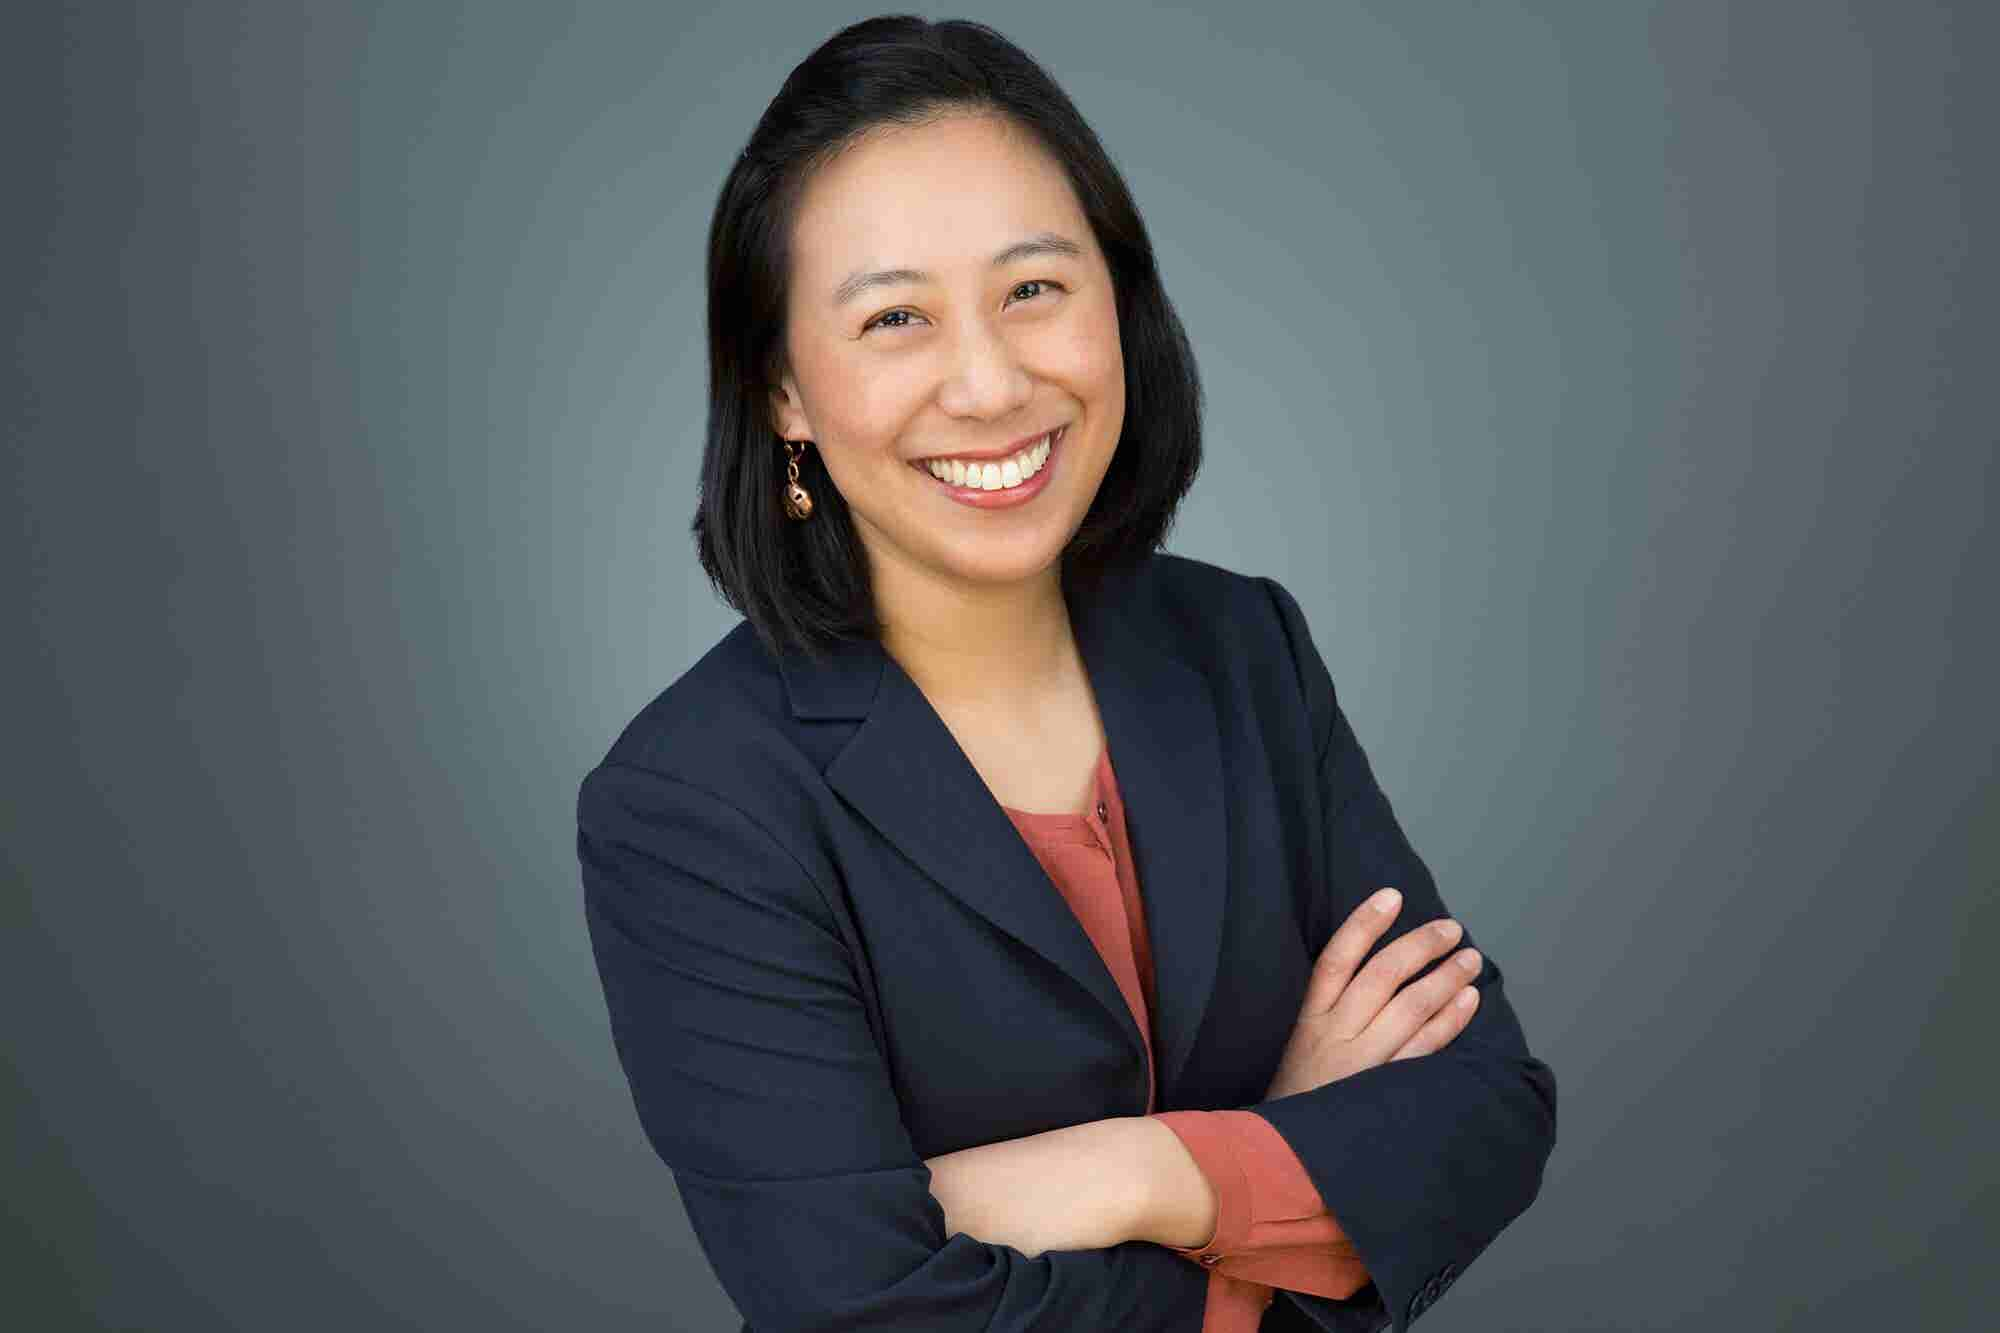 Focused On The Future: Udacity COO Clarissa Shen On How Her Platform Aims To Fill The Global Tech Skills Gap